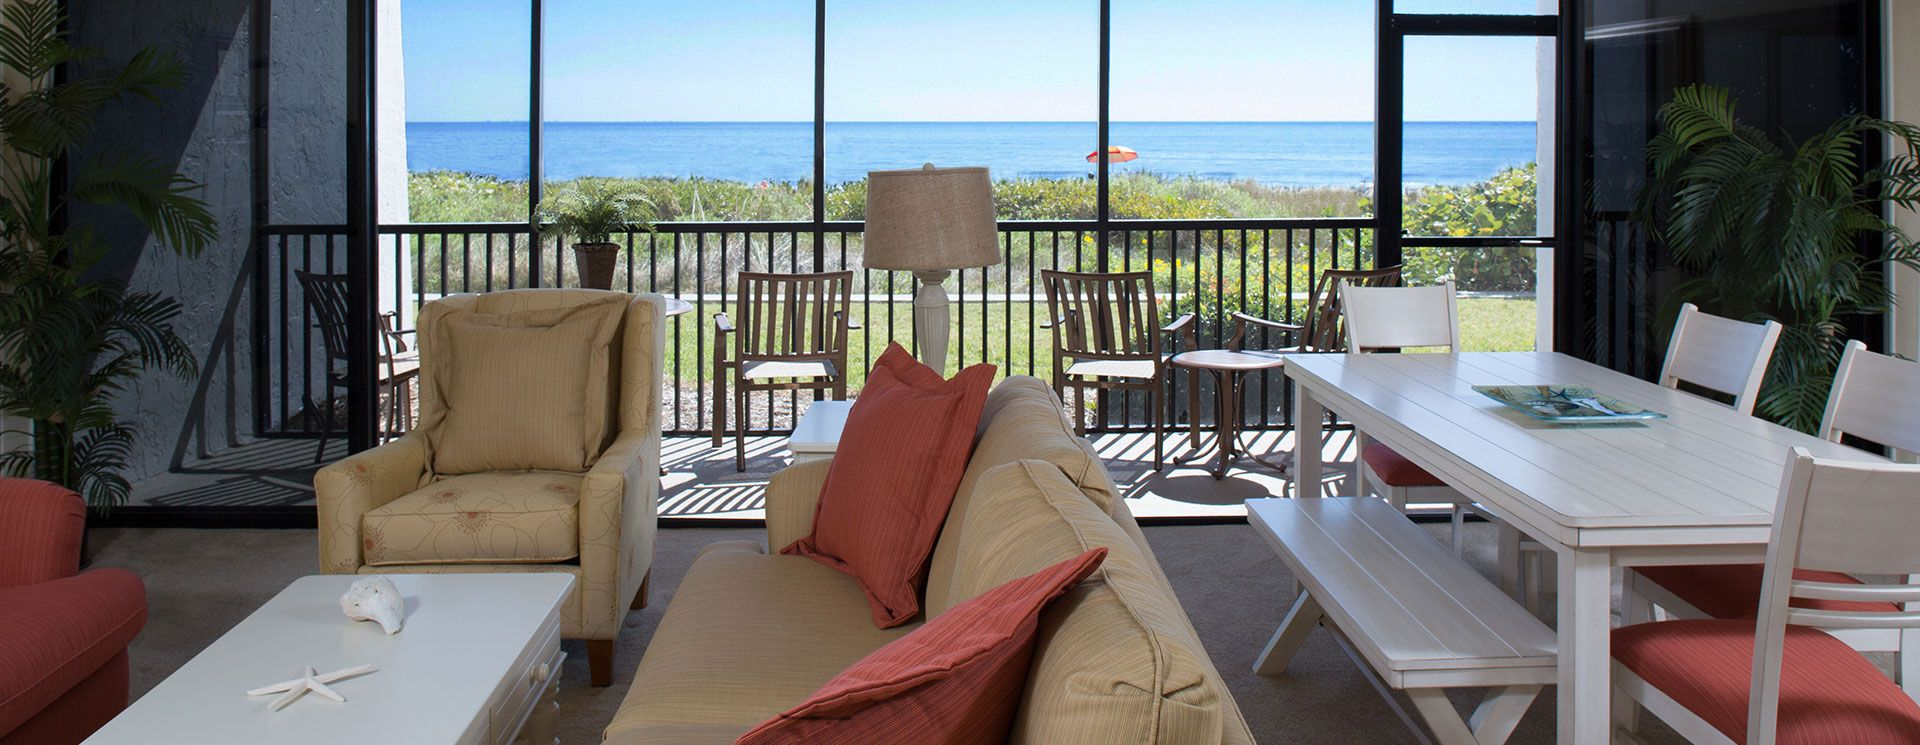 three bedroom sundial beach resort spa sanibel. Black Bedroom Furniture Sets. Home Design Ideas